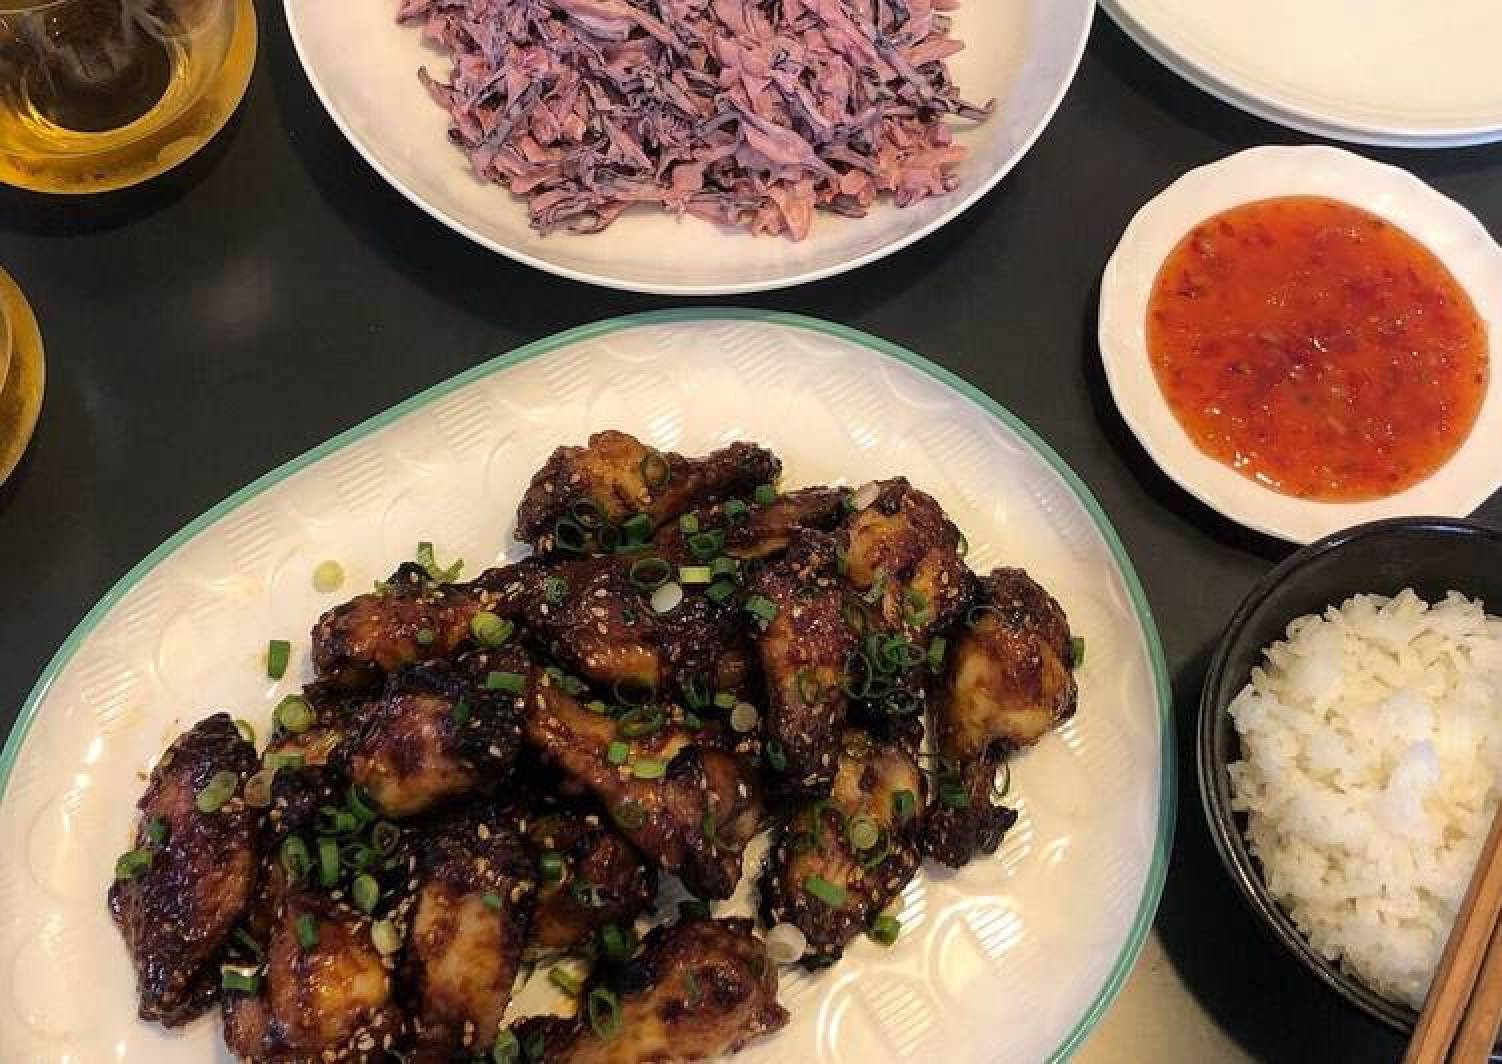 Sweet & sticky wings with classic slaw